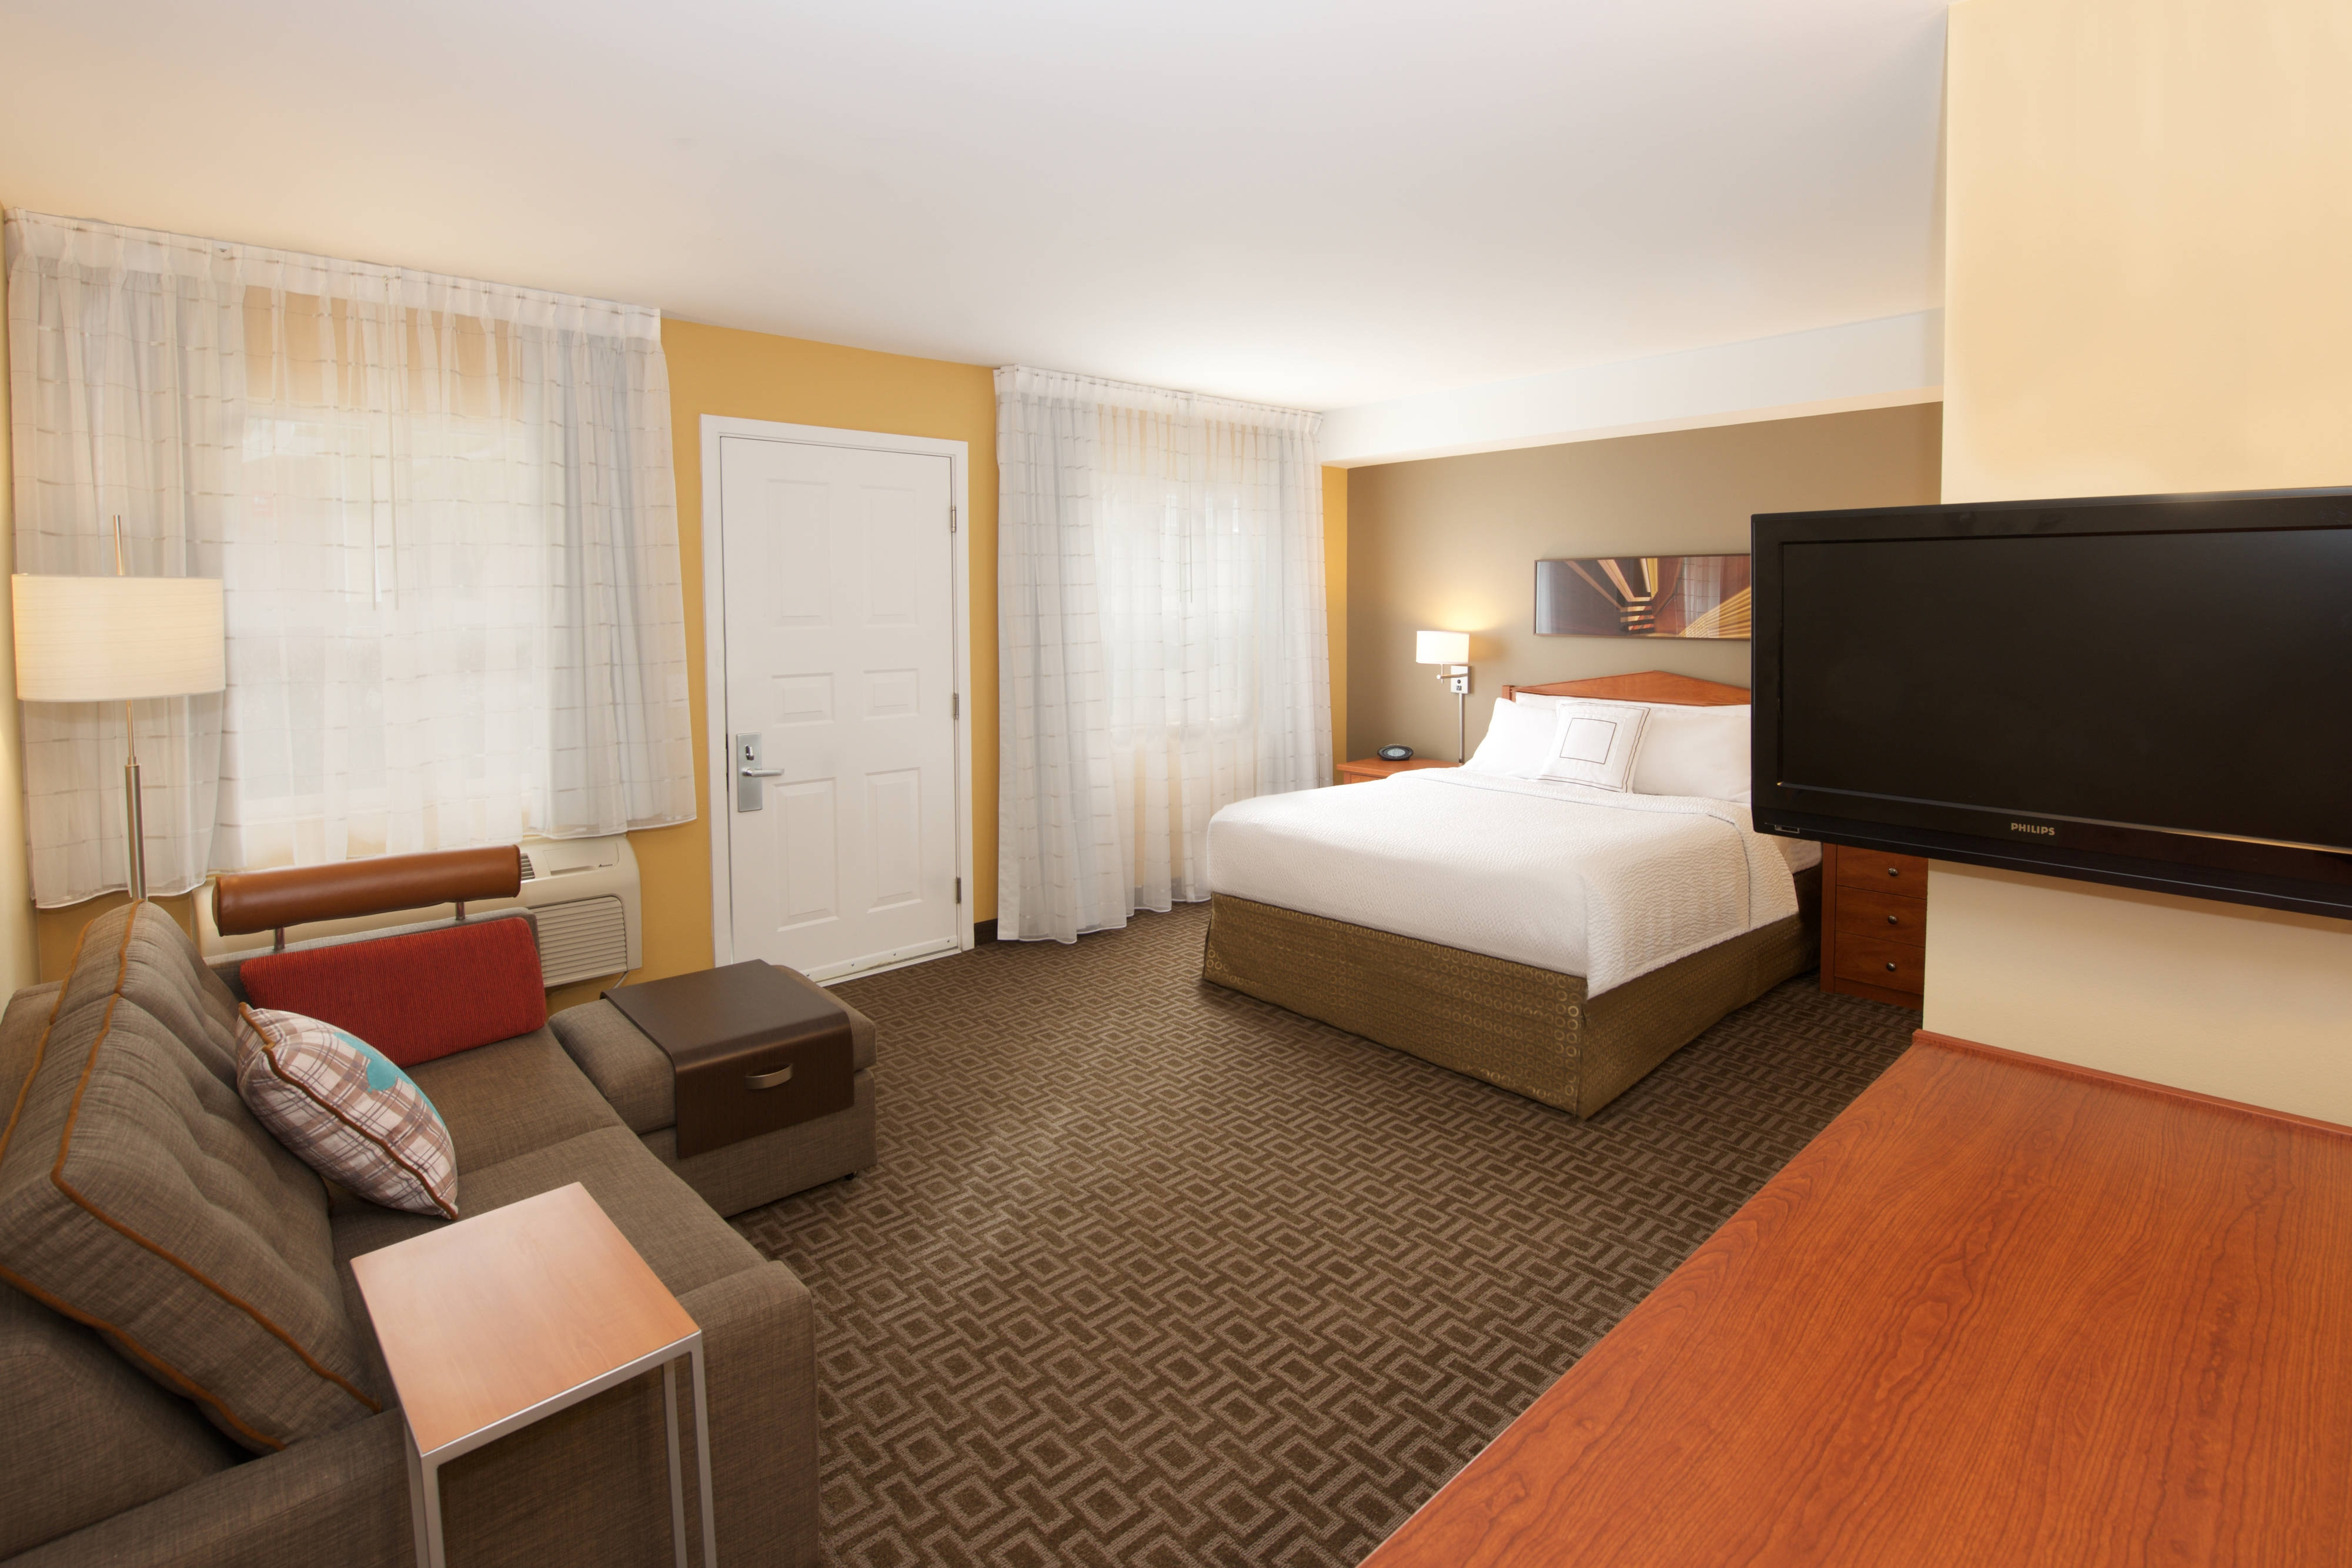 Queen Studio-extended stay hotel